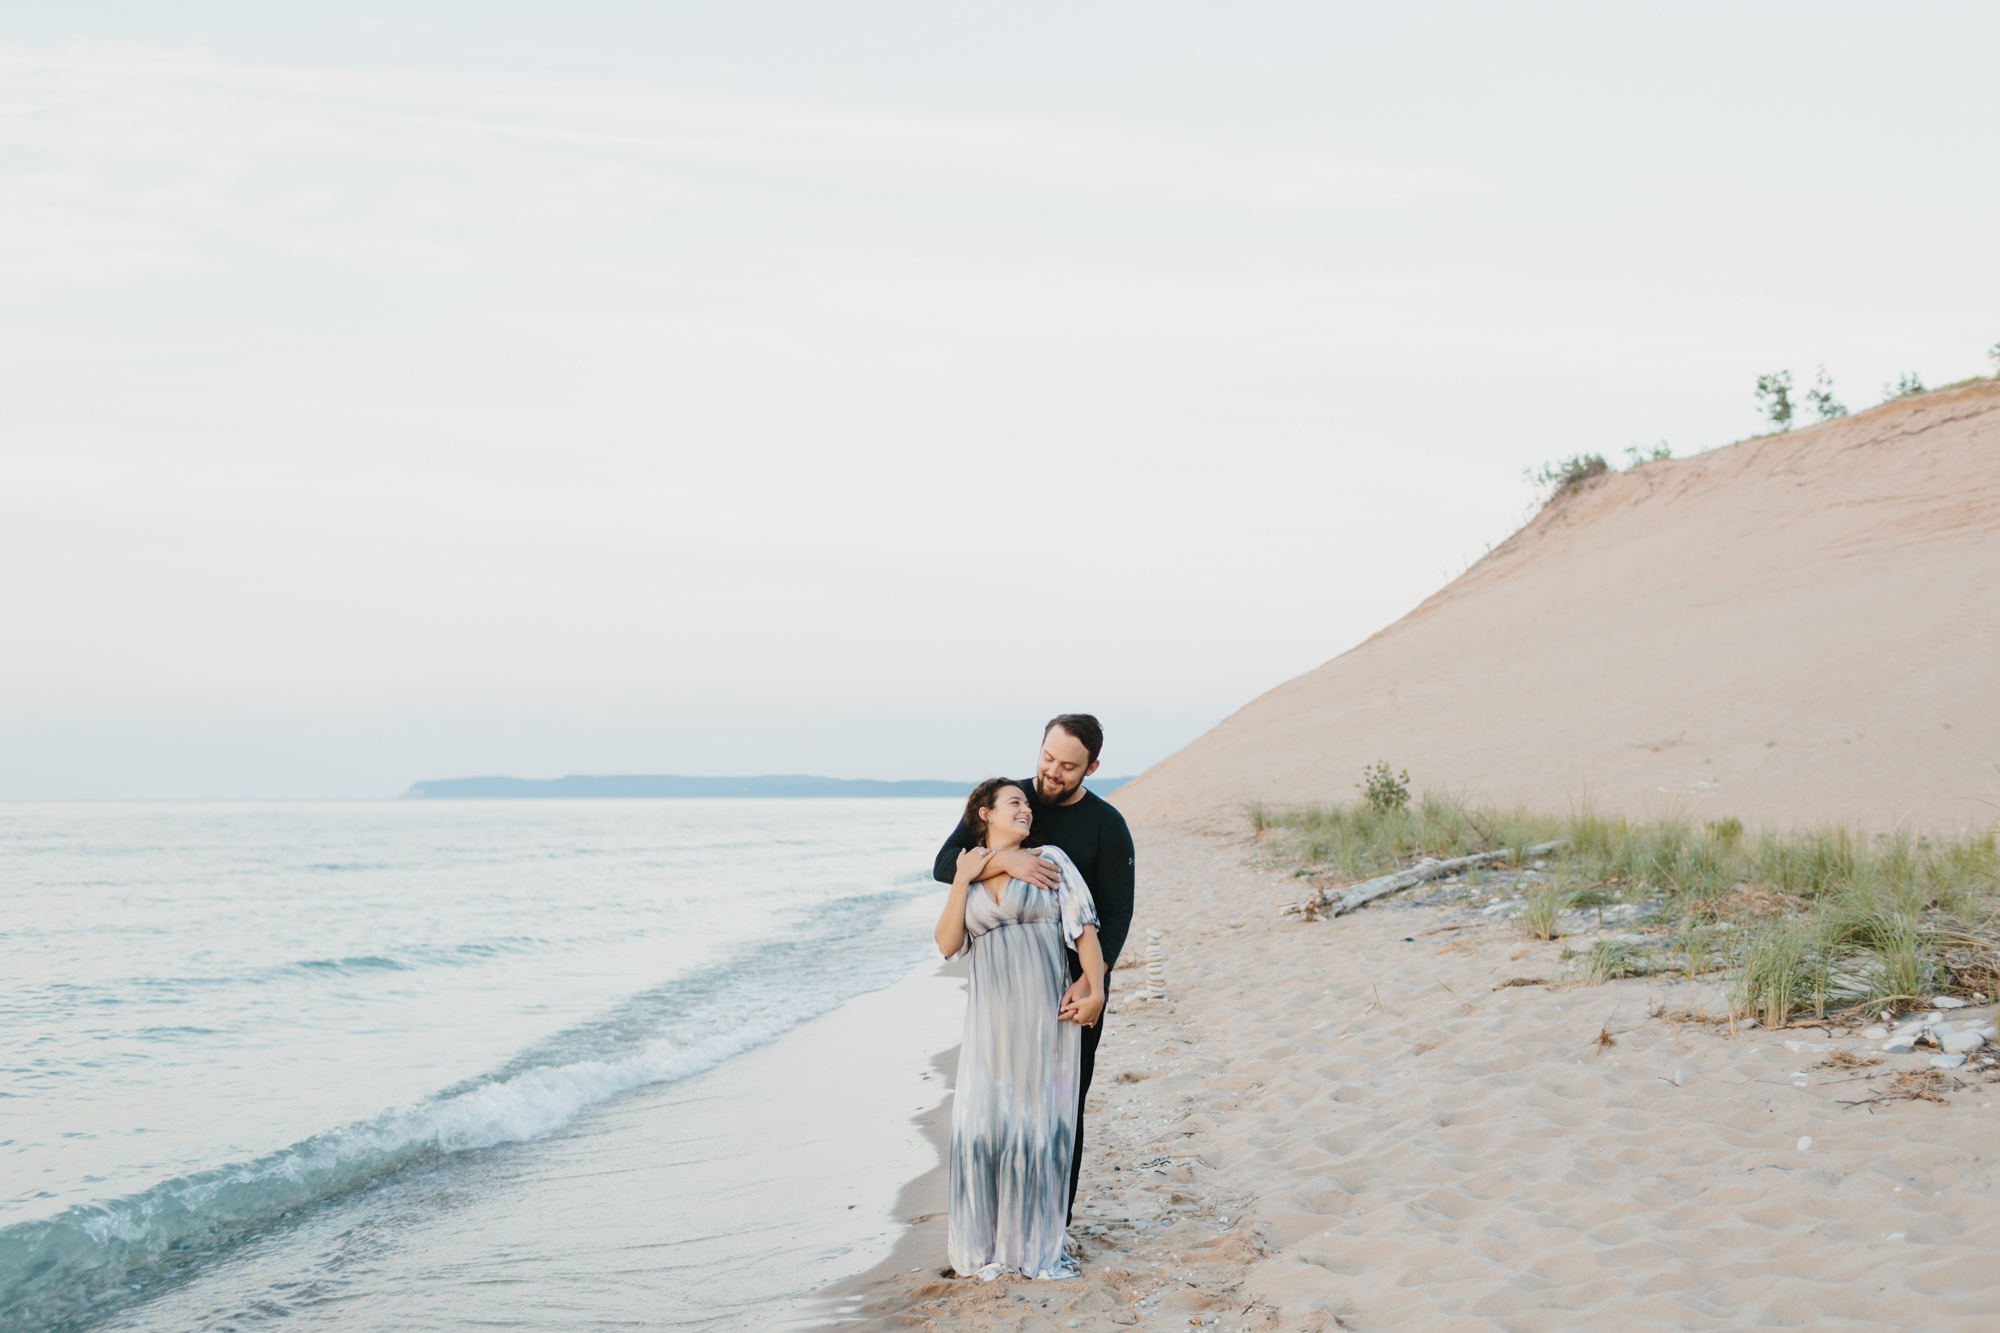 Northern Michigan Sleeping Bear Dunes Wedding Engagement Photographer Mae Stier-036.jpg